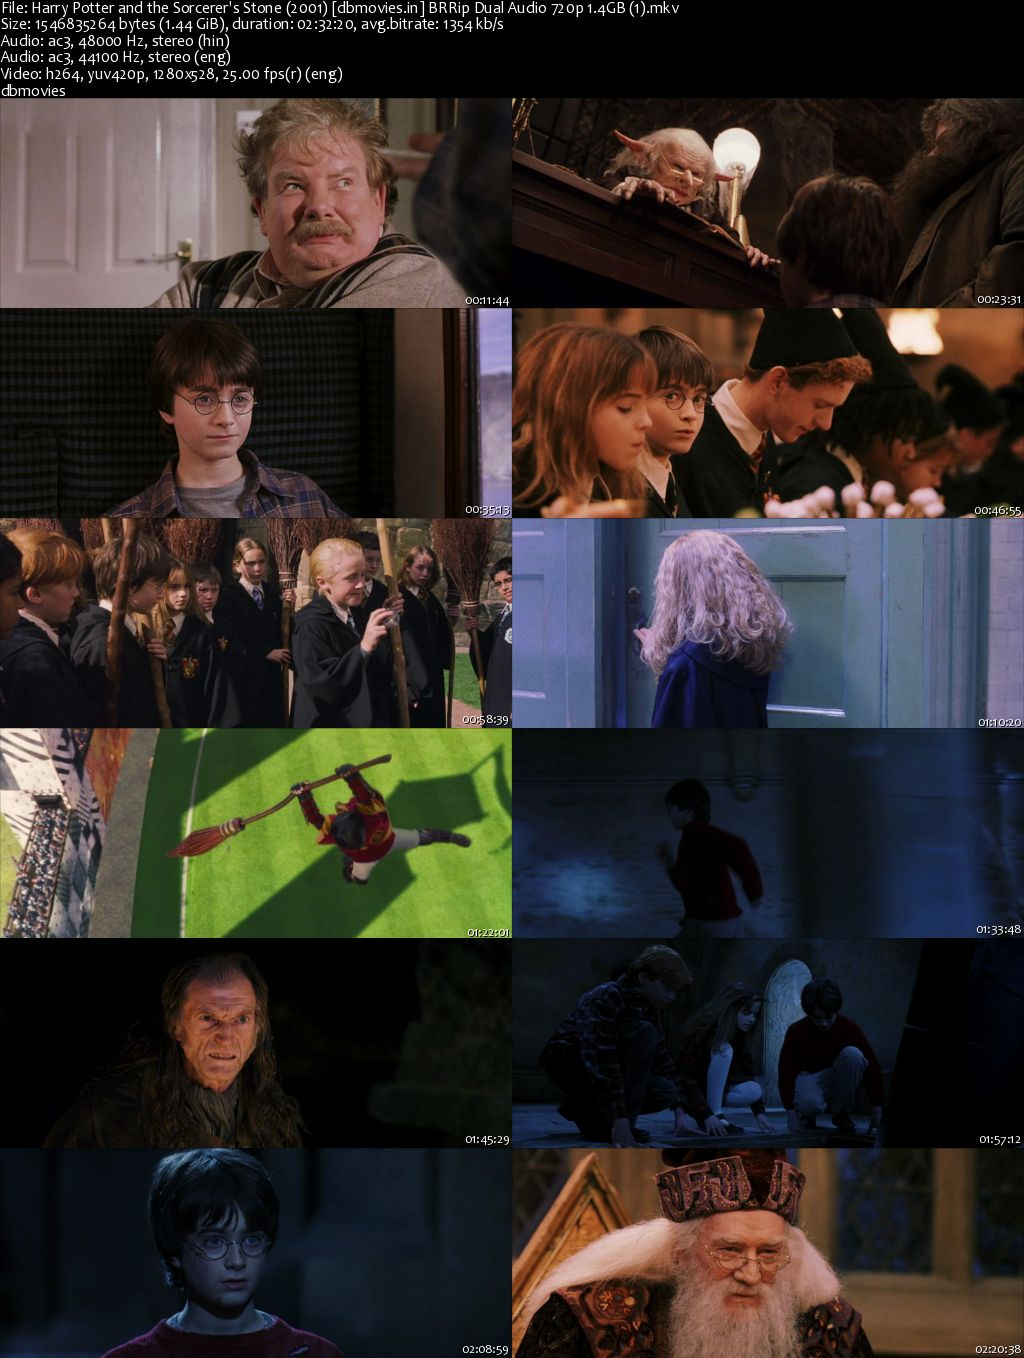 scrren shot Harry Potter and the Sorcerer's Stone 2001 Full Movie Dual Audio Hindi Download 720p